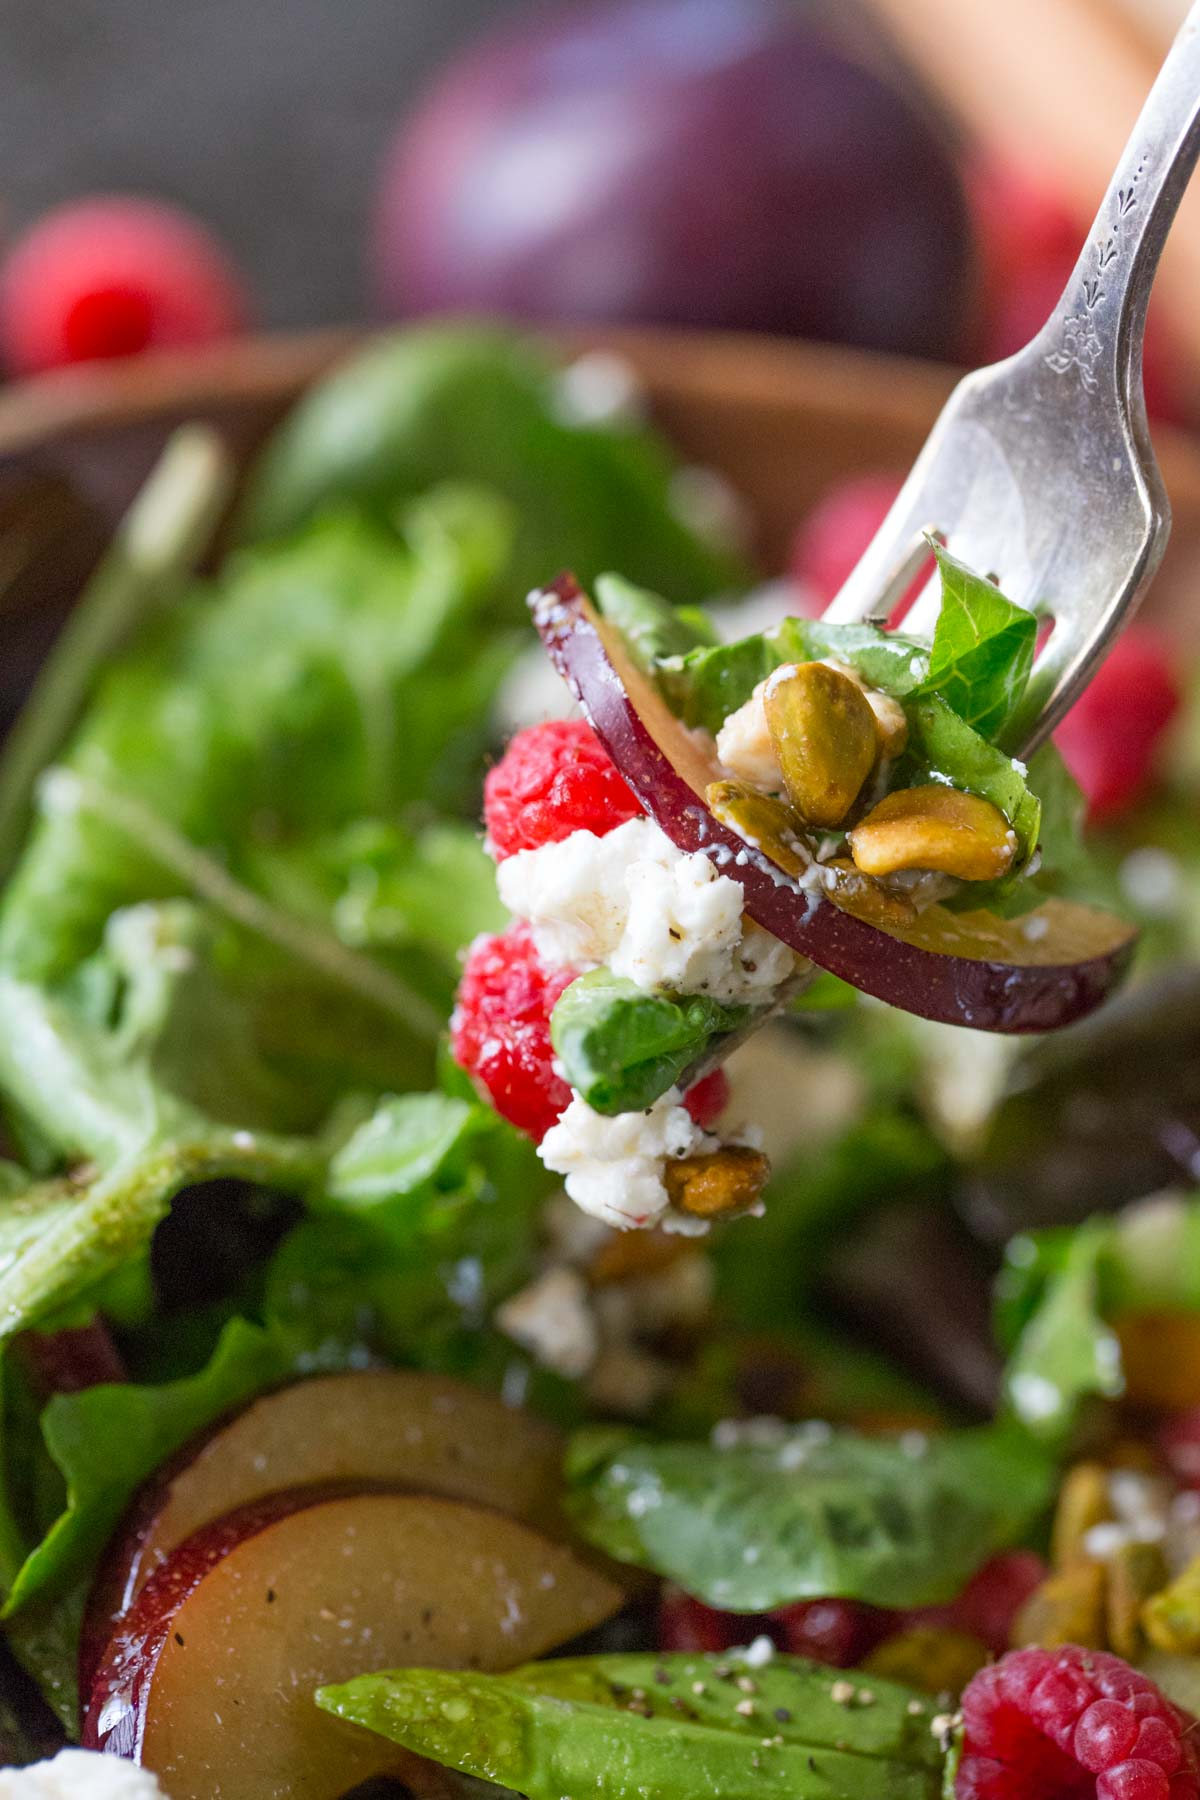 A fork full of Summer Fruited Salad with Goat Cheese and Pistachios held over the bowl of salad.